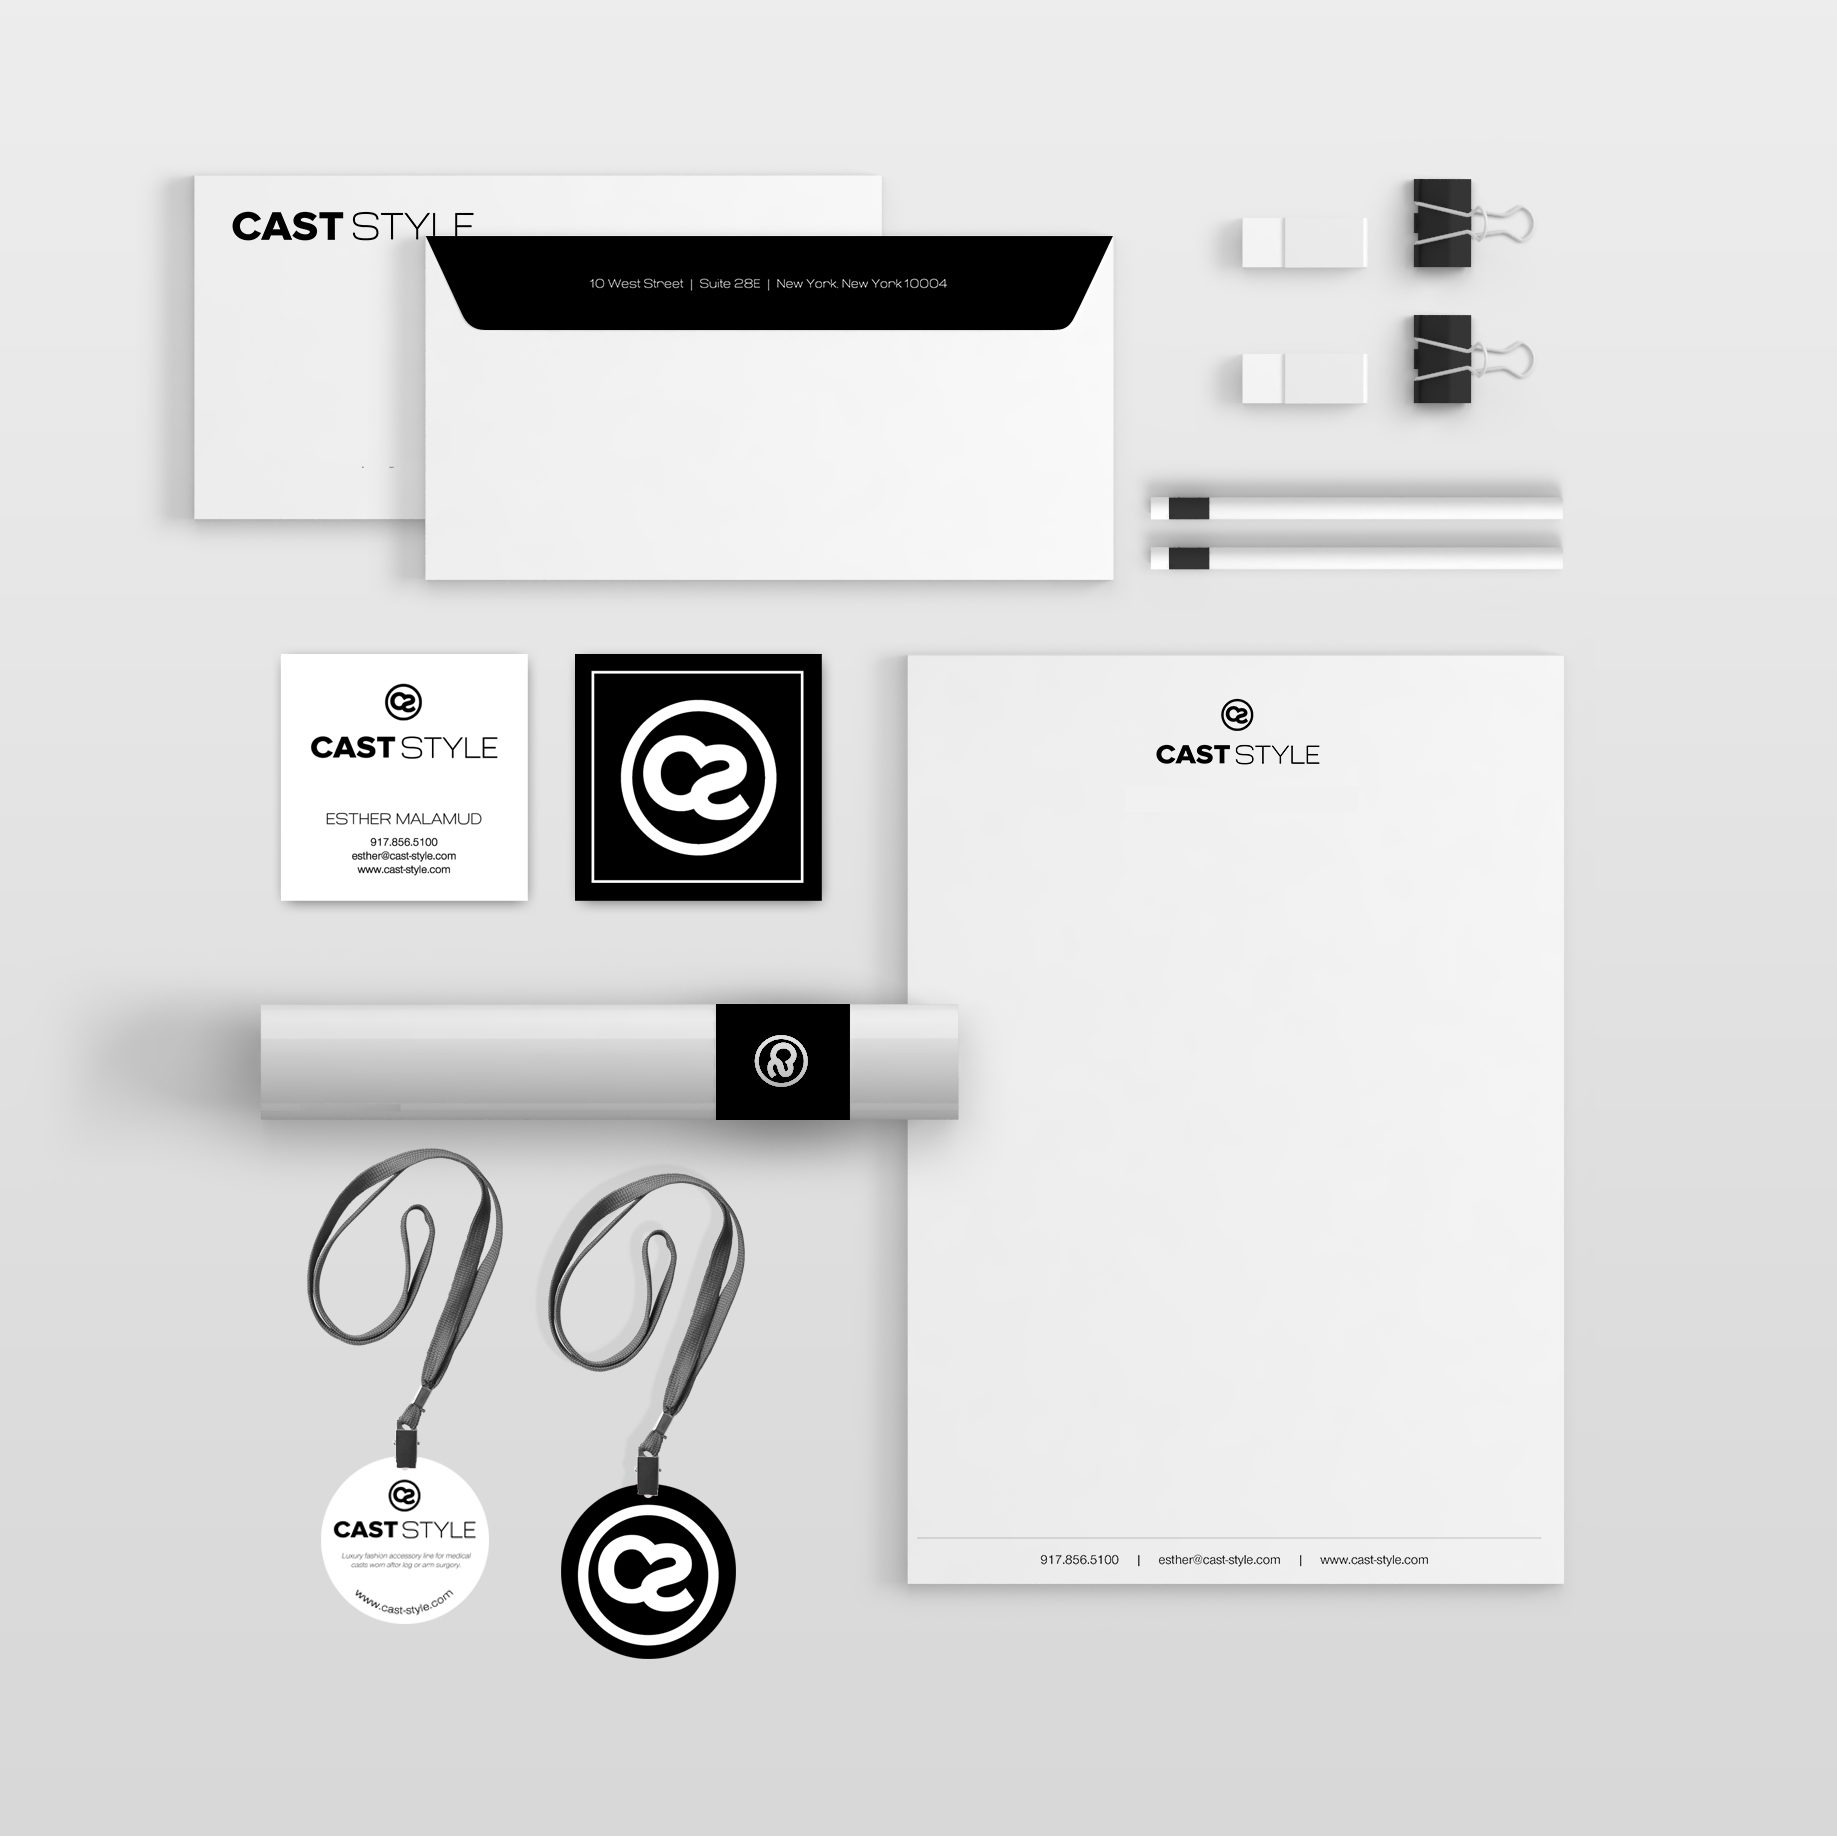 cast-style-brand-collateral